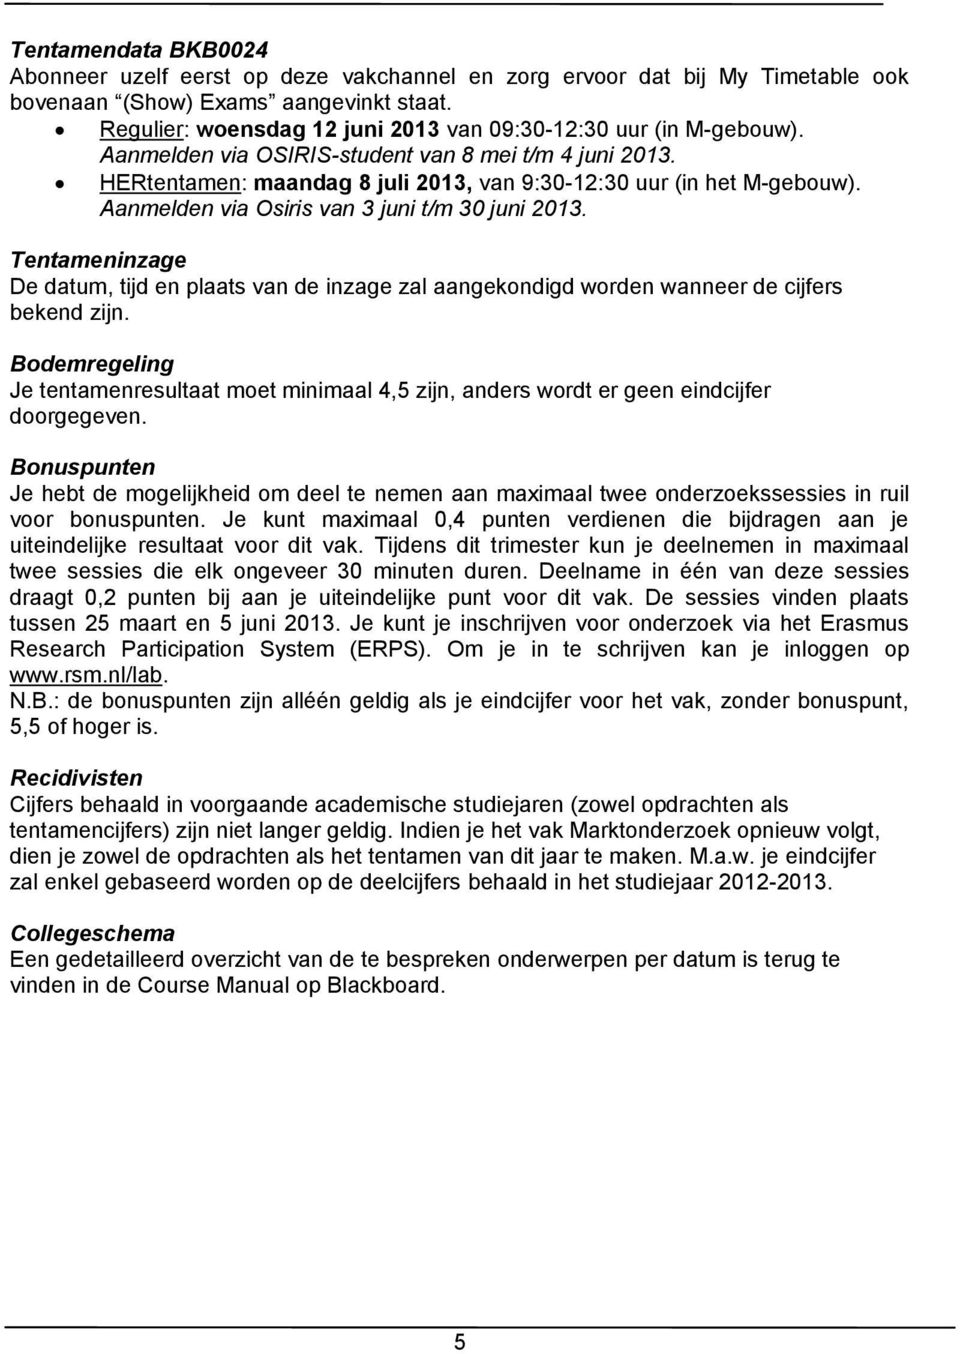 tip.wur.nl only available inside Wageningen University